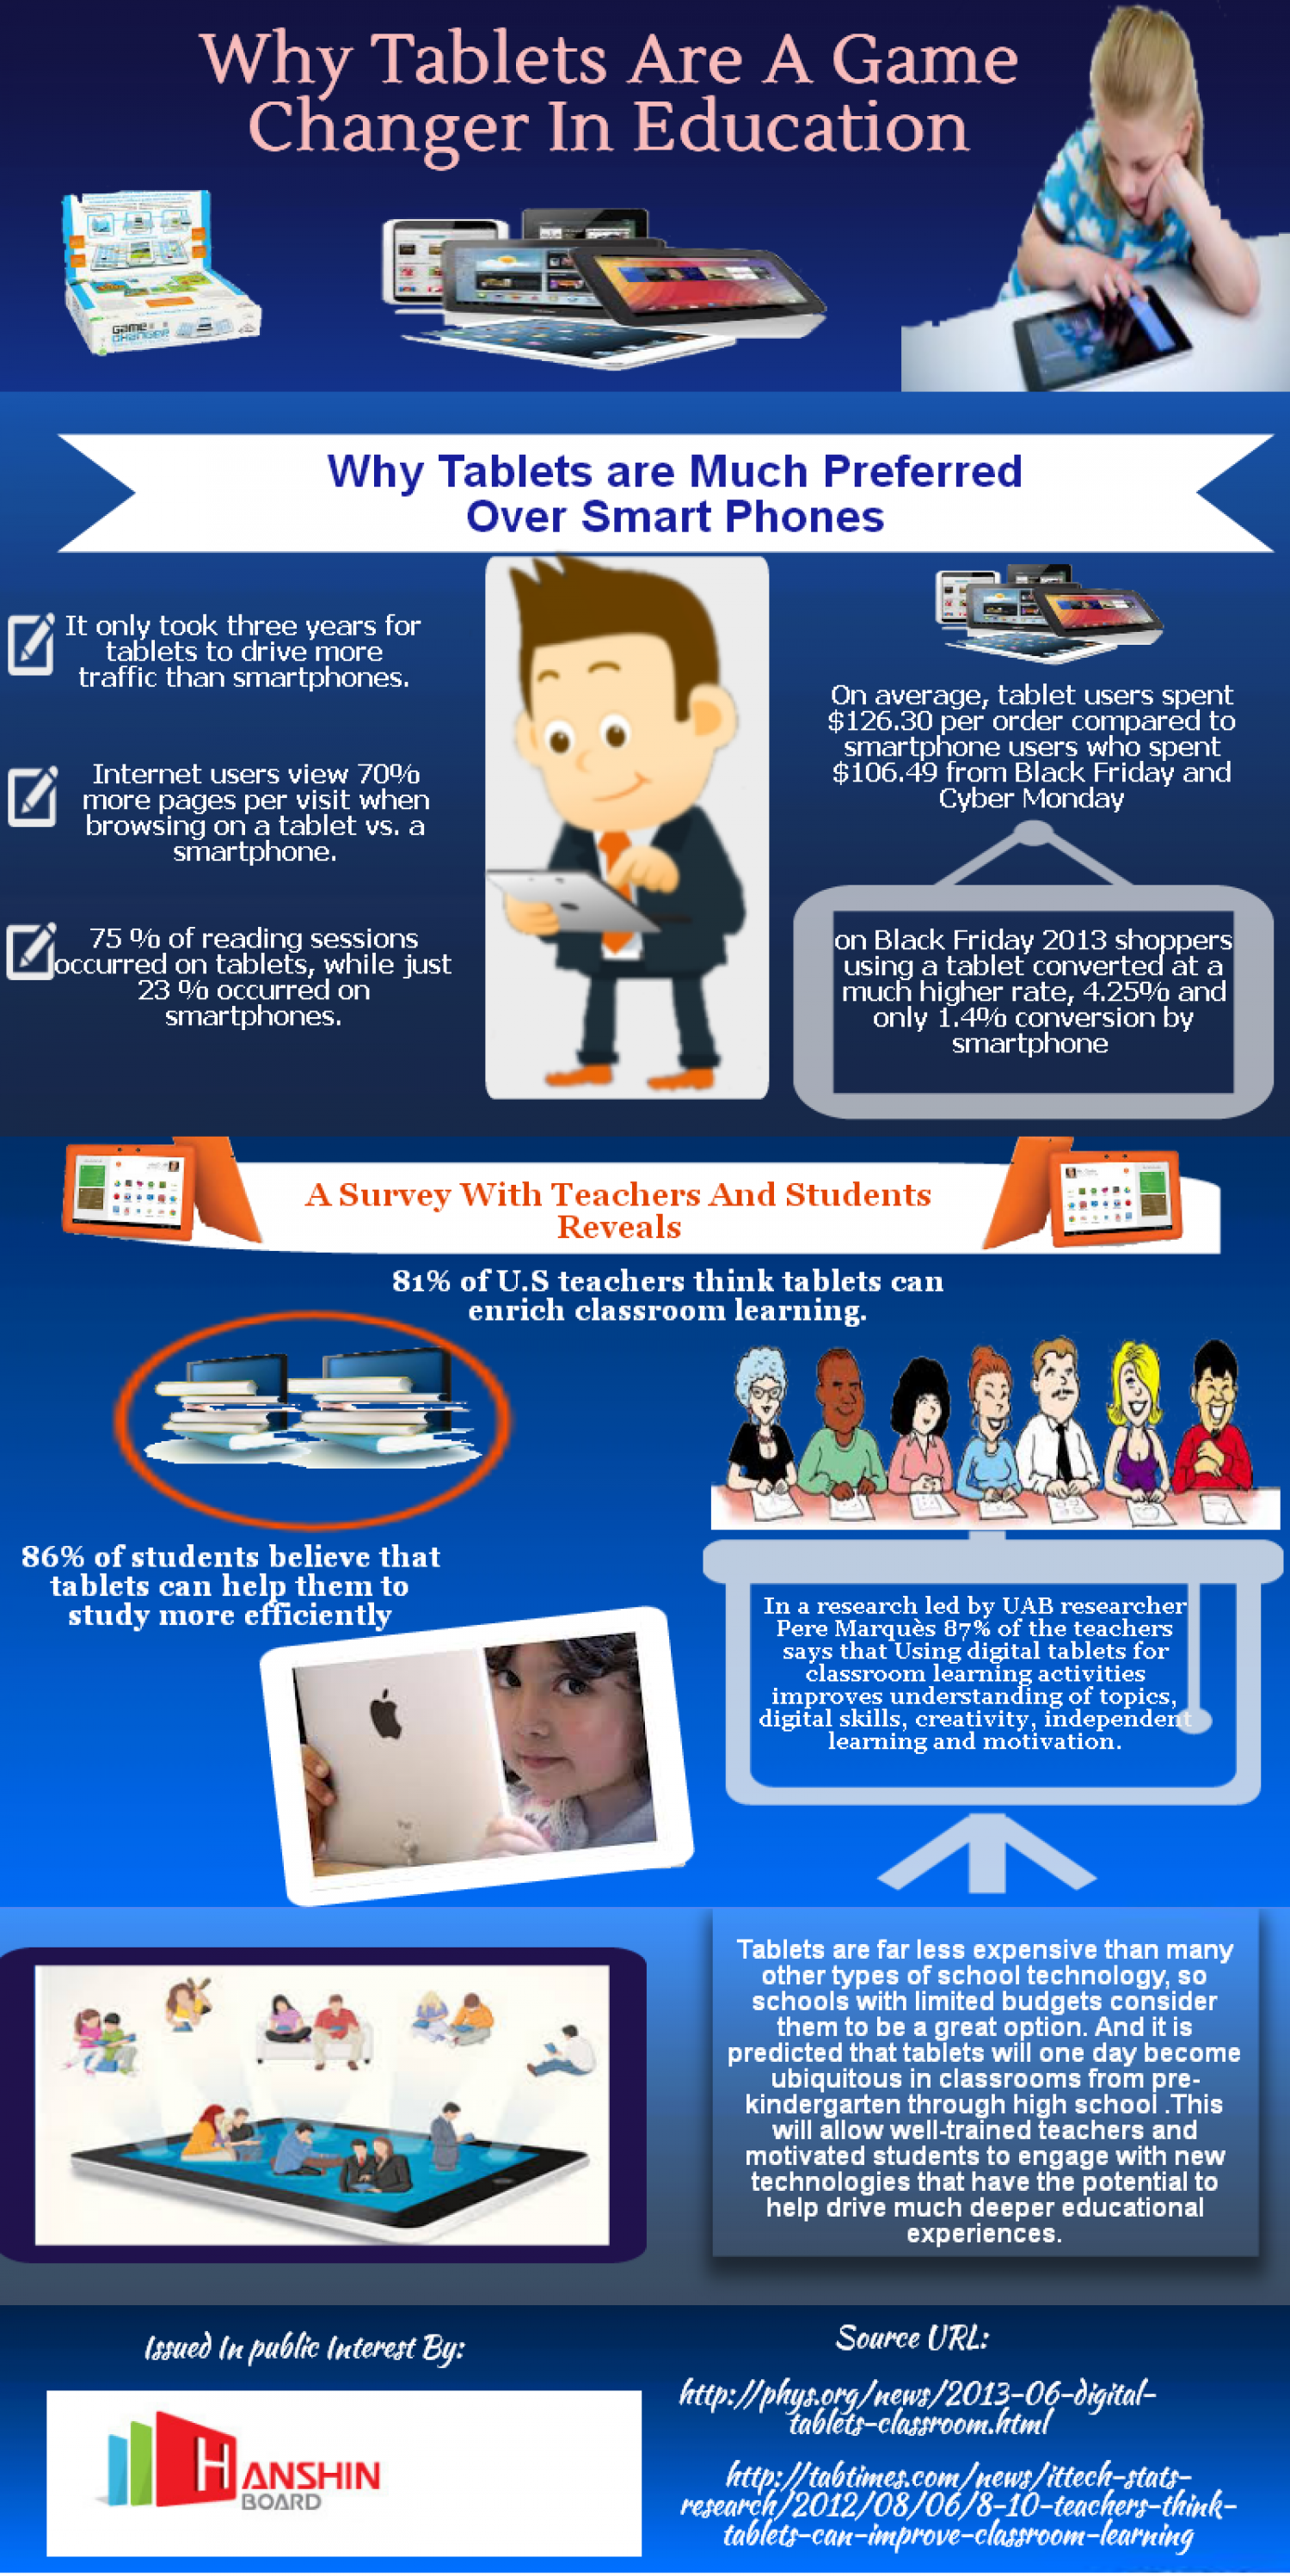 Why tablets are a game changer in education Infographic